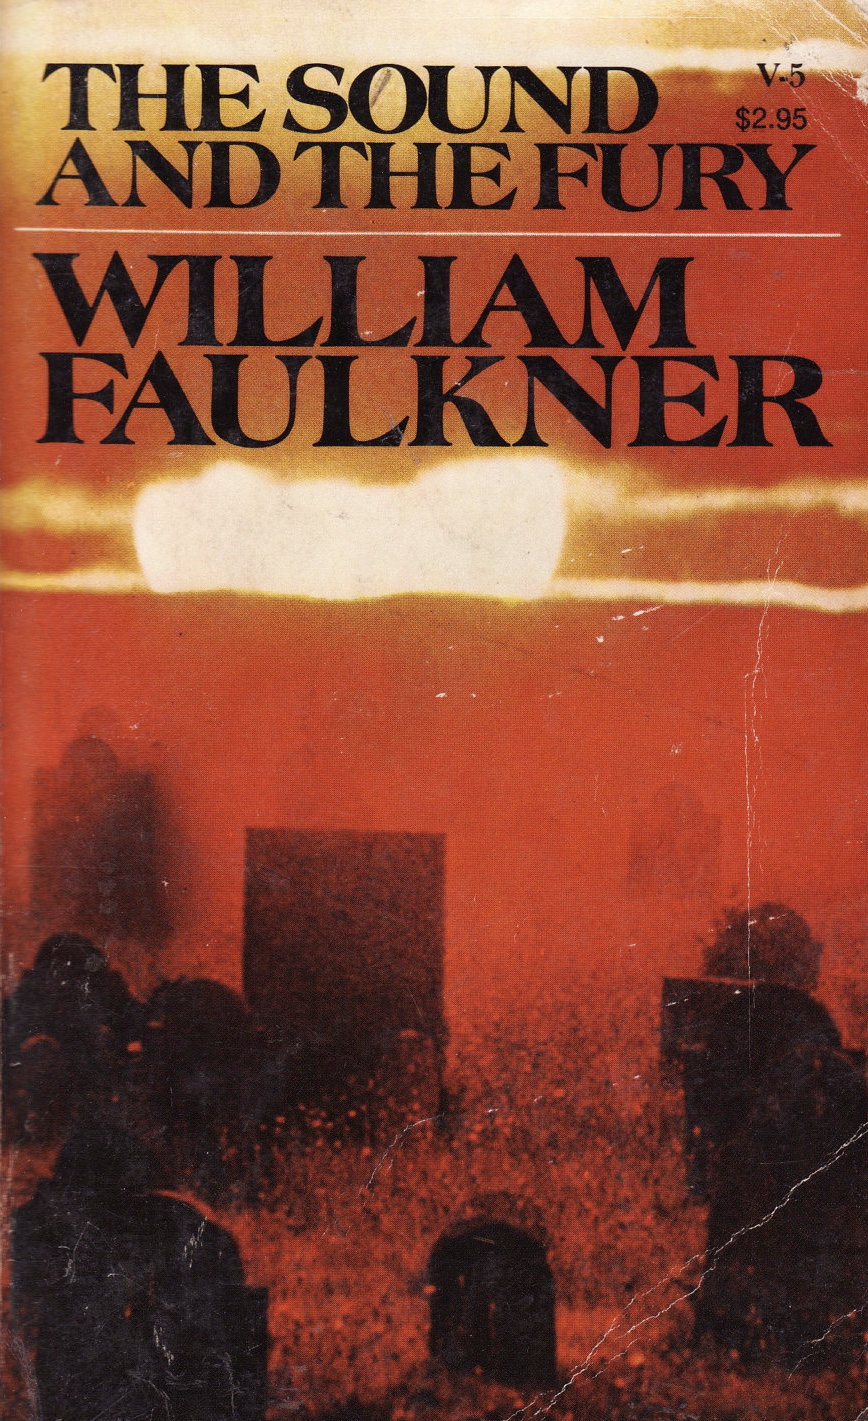 an examination of the plot of the sound and the fury by william faulkner The sound and the fury by william faulkner essay - in william faulkner's novel, the sound and the fury, the decline of southern moral values at the close of the civil war was a major theme.